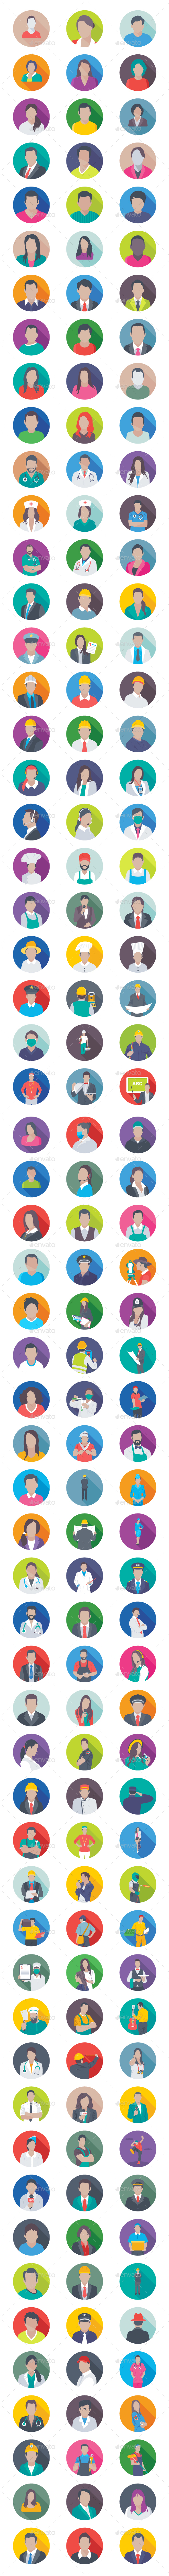 175 Professions Flat Icons - Icons